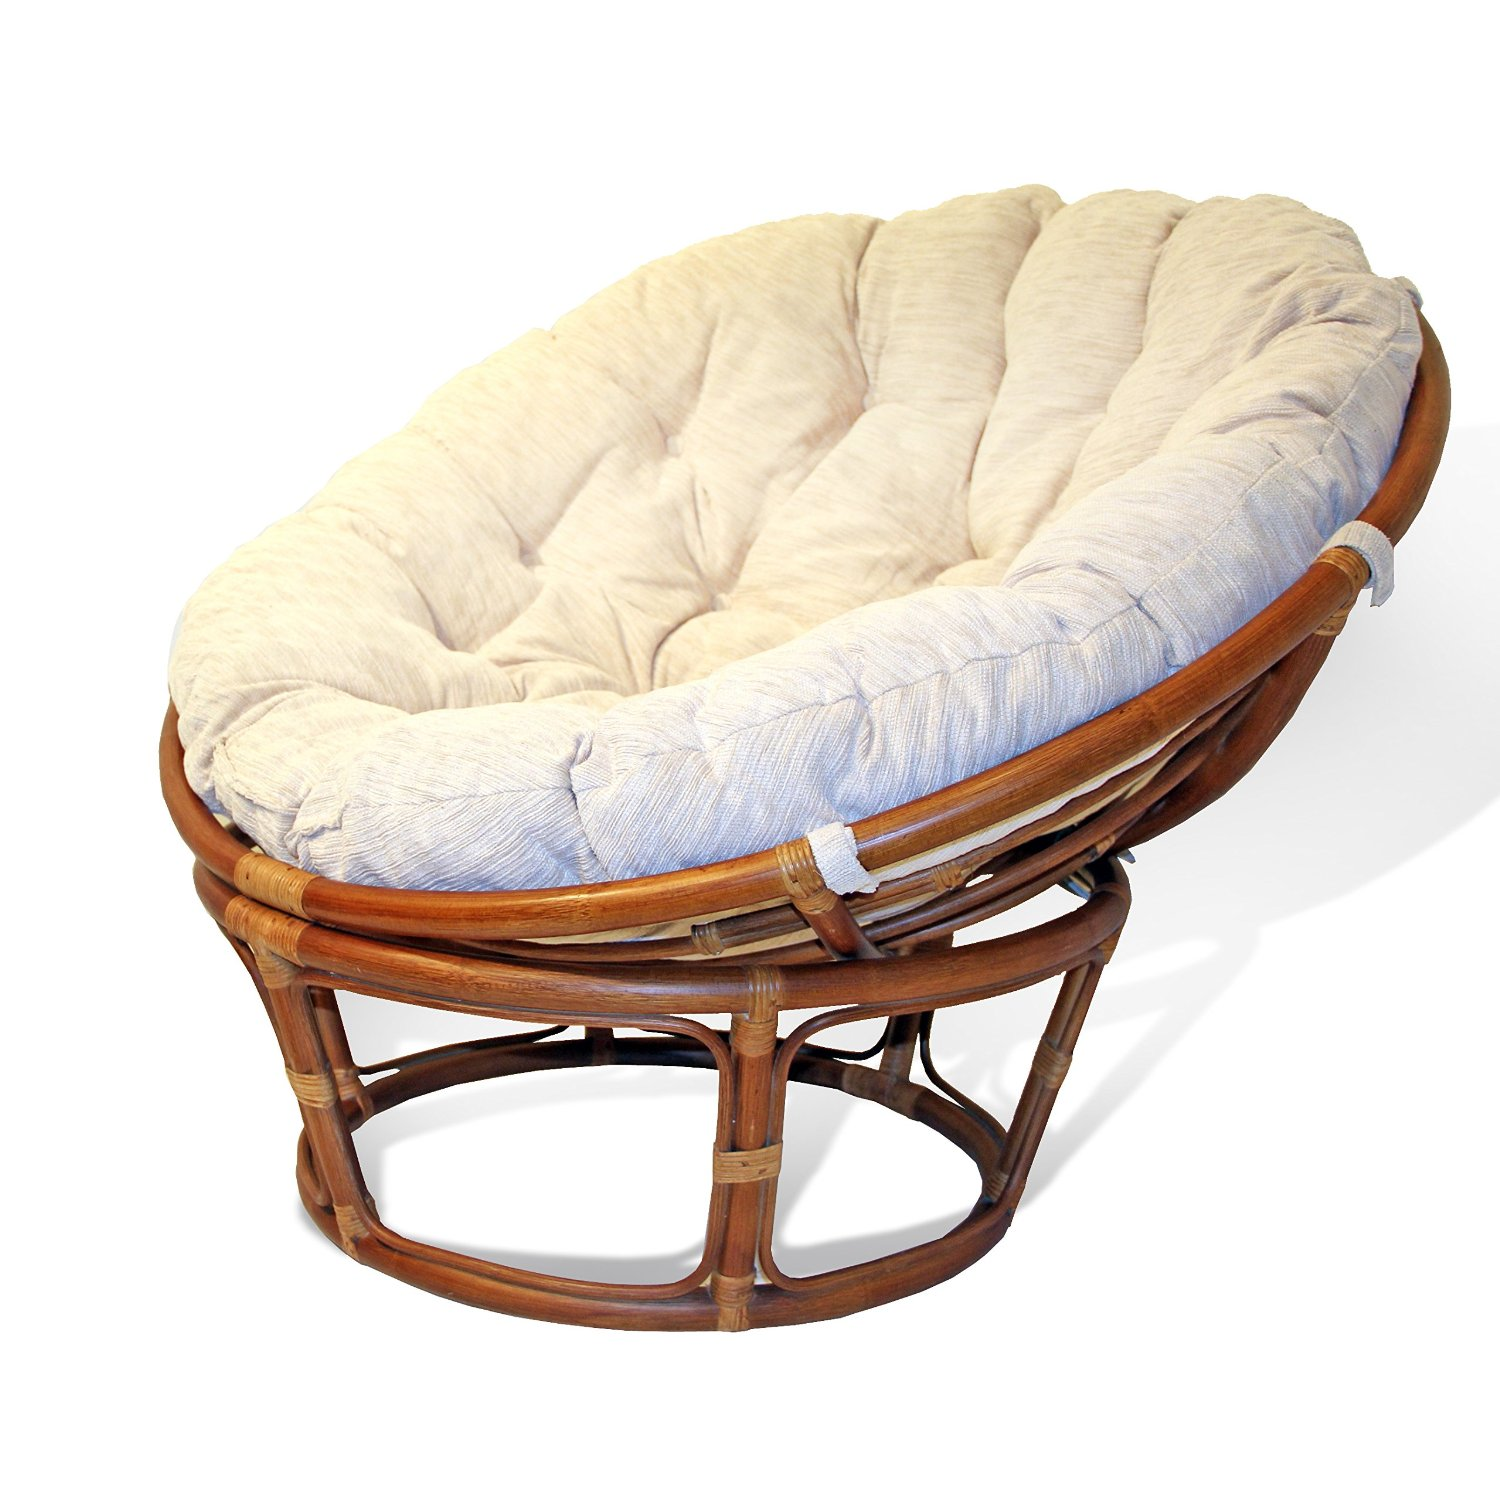 Cheap Wicker Papasan Find Wicker Papasan Deals On Line At Alibaba Com